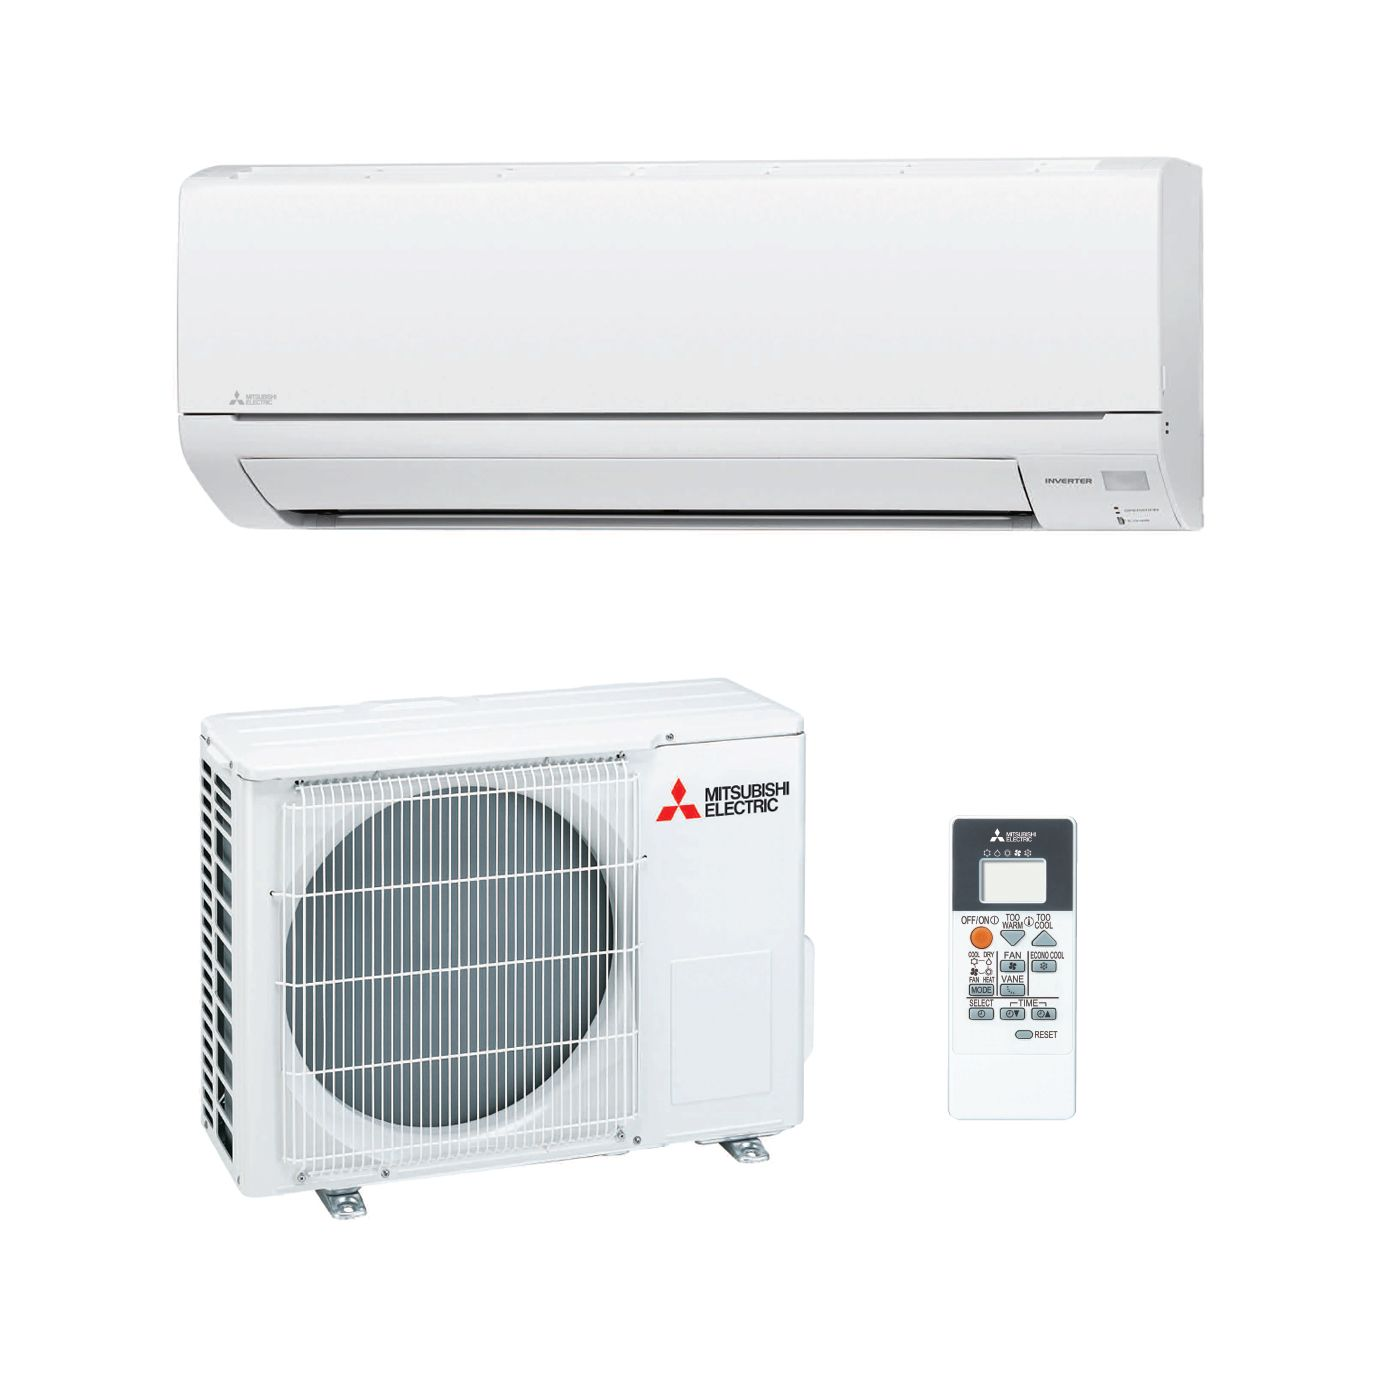 Mitsubishi Electric Air Conditioning MSZ DM25VA Wall Mounted 2.5Kw/9000Btu  Inverter Heat Pump A+ 240V~50Hz